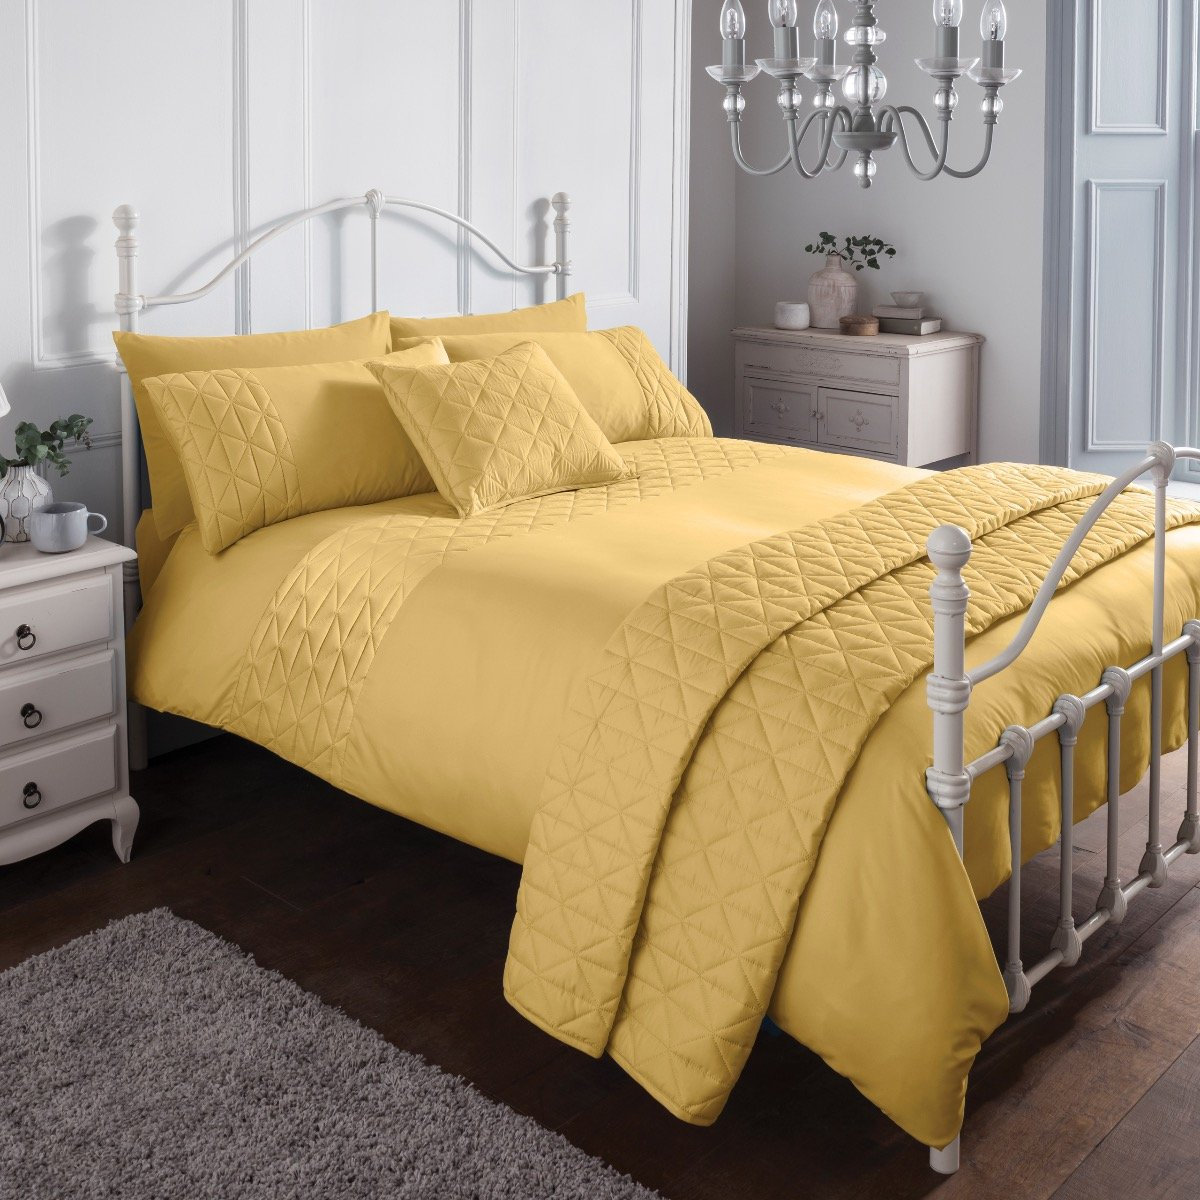 Pinsonic Mustard Bedding - Reversible Duvet Cover and Pillowcase Set